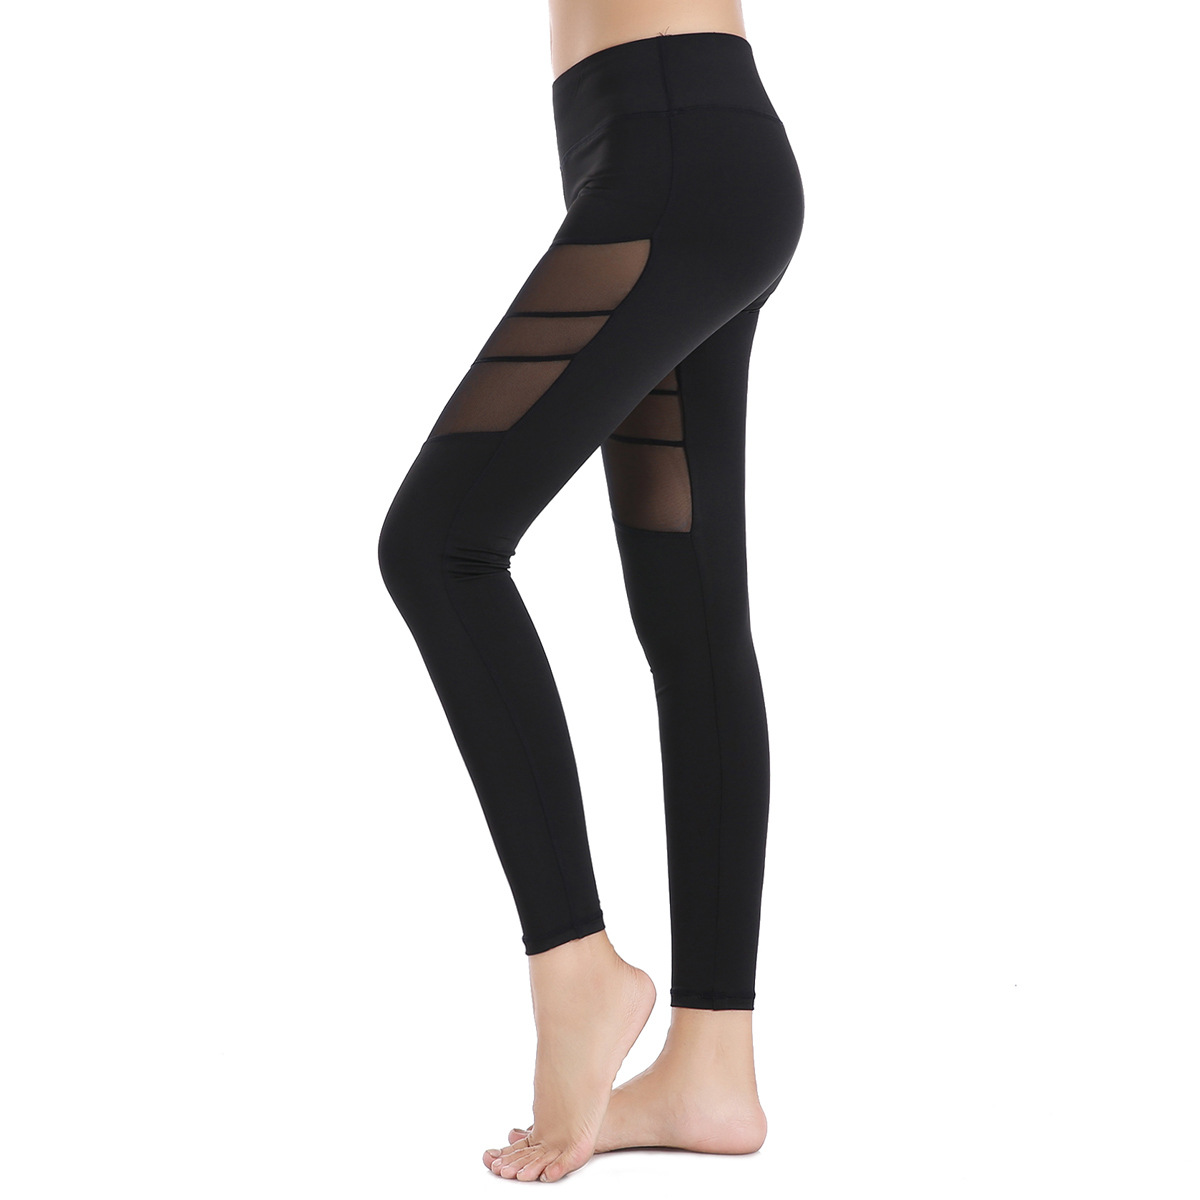 Women Yoga Compression Pants Mesh Leggings Pants Elastic Tights Sexy Pocket for Workout Gym Jogging